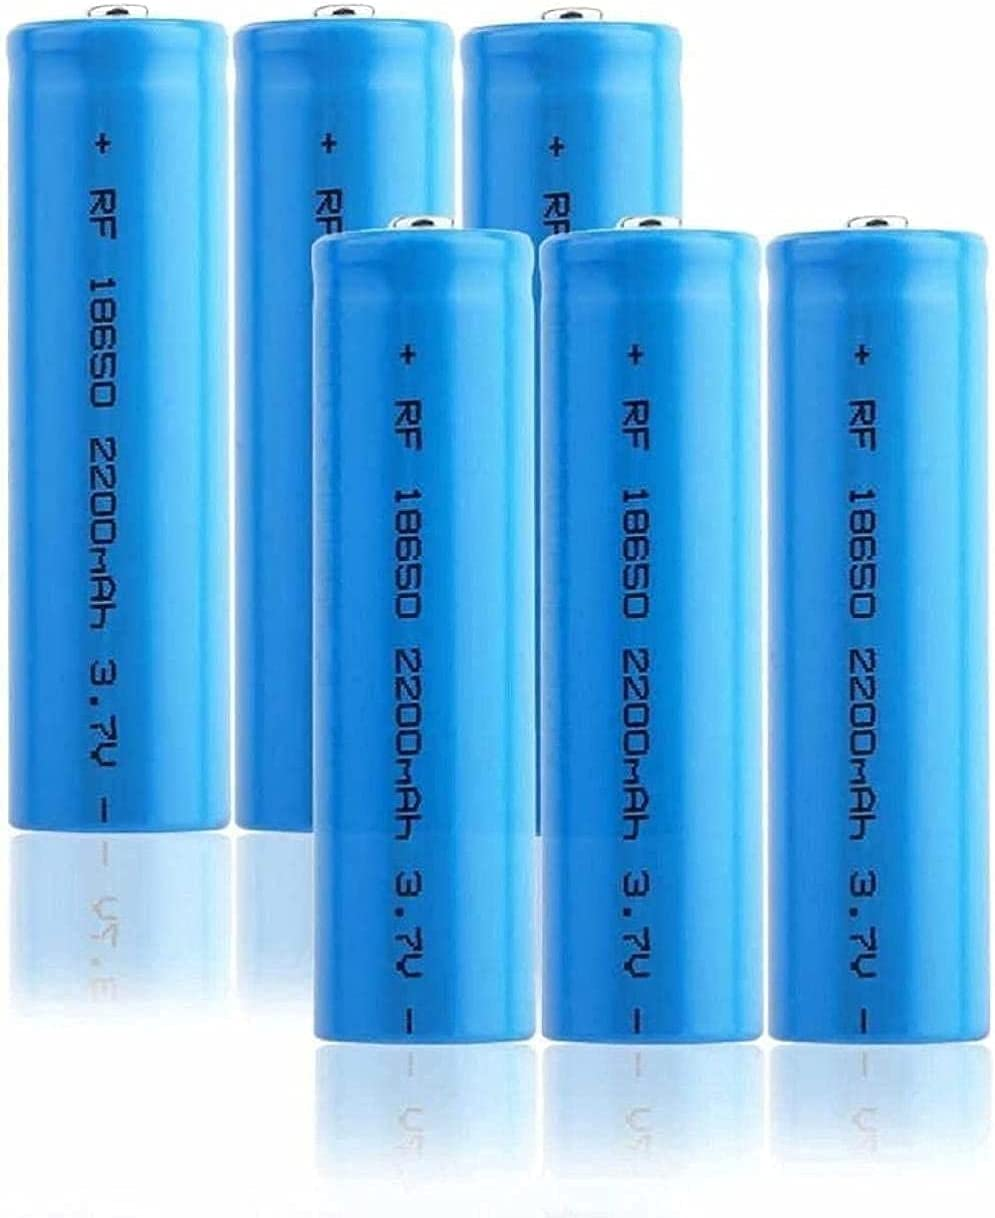 Rechargeable OFFicial site Battery 3.7V Limited time trial price Lithium High Batteries Ca